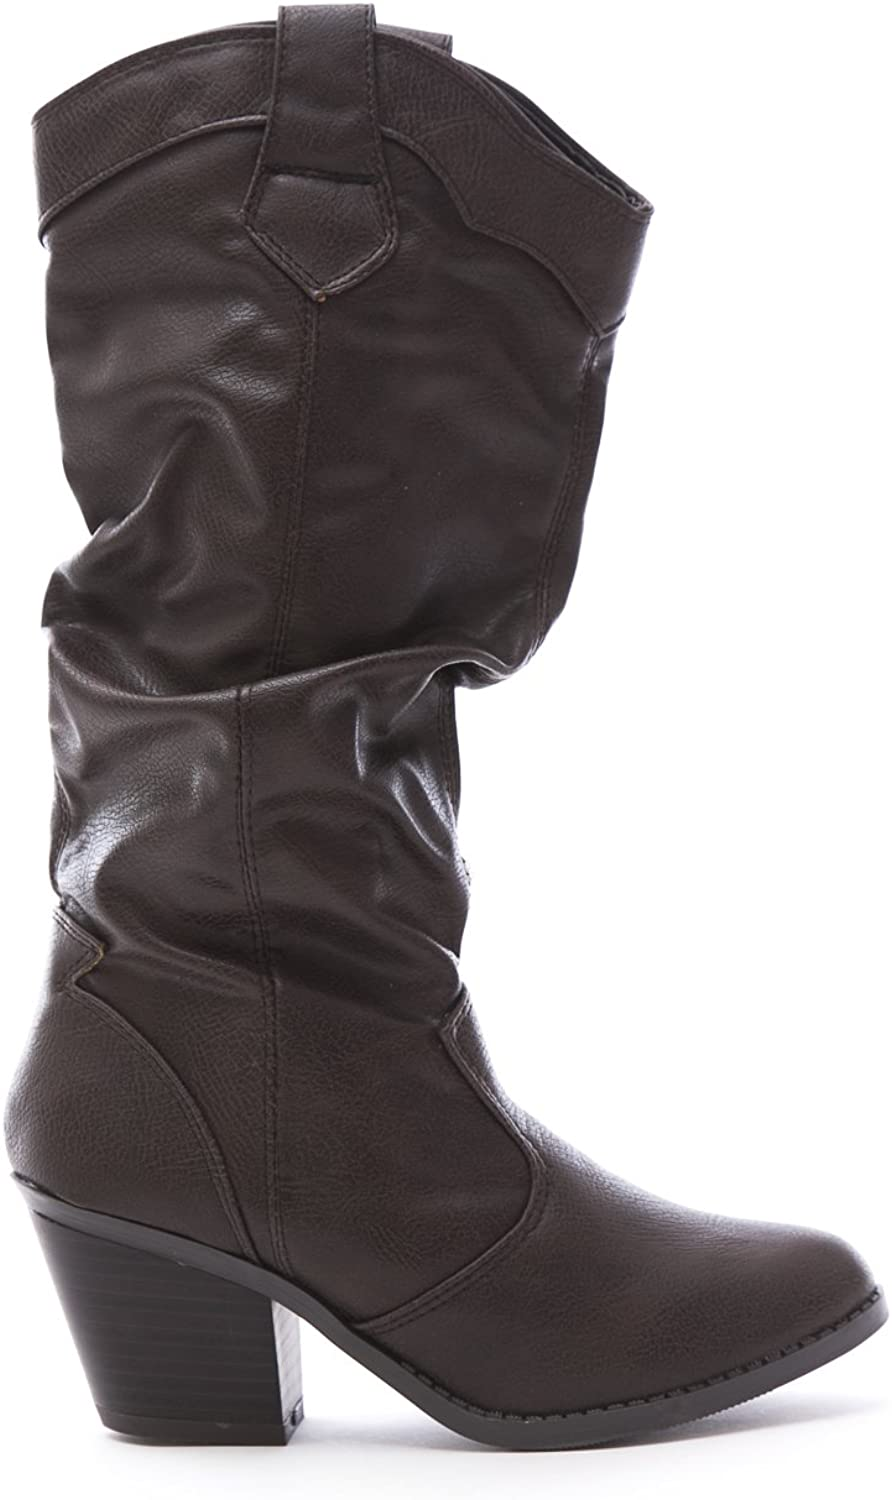 New Women's Western Cowboy Slouchy Knee High Boot